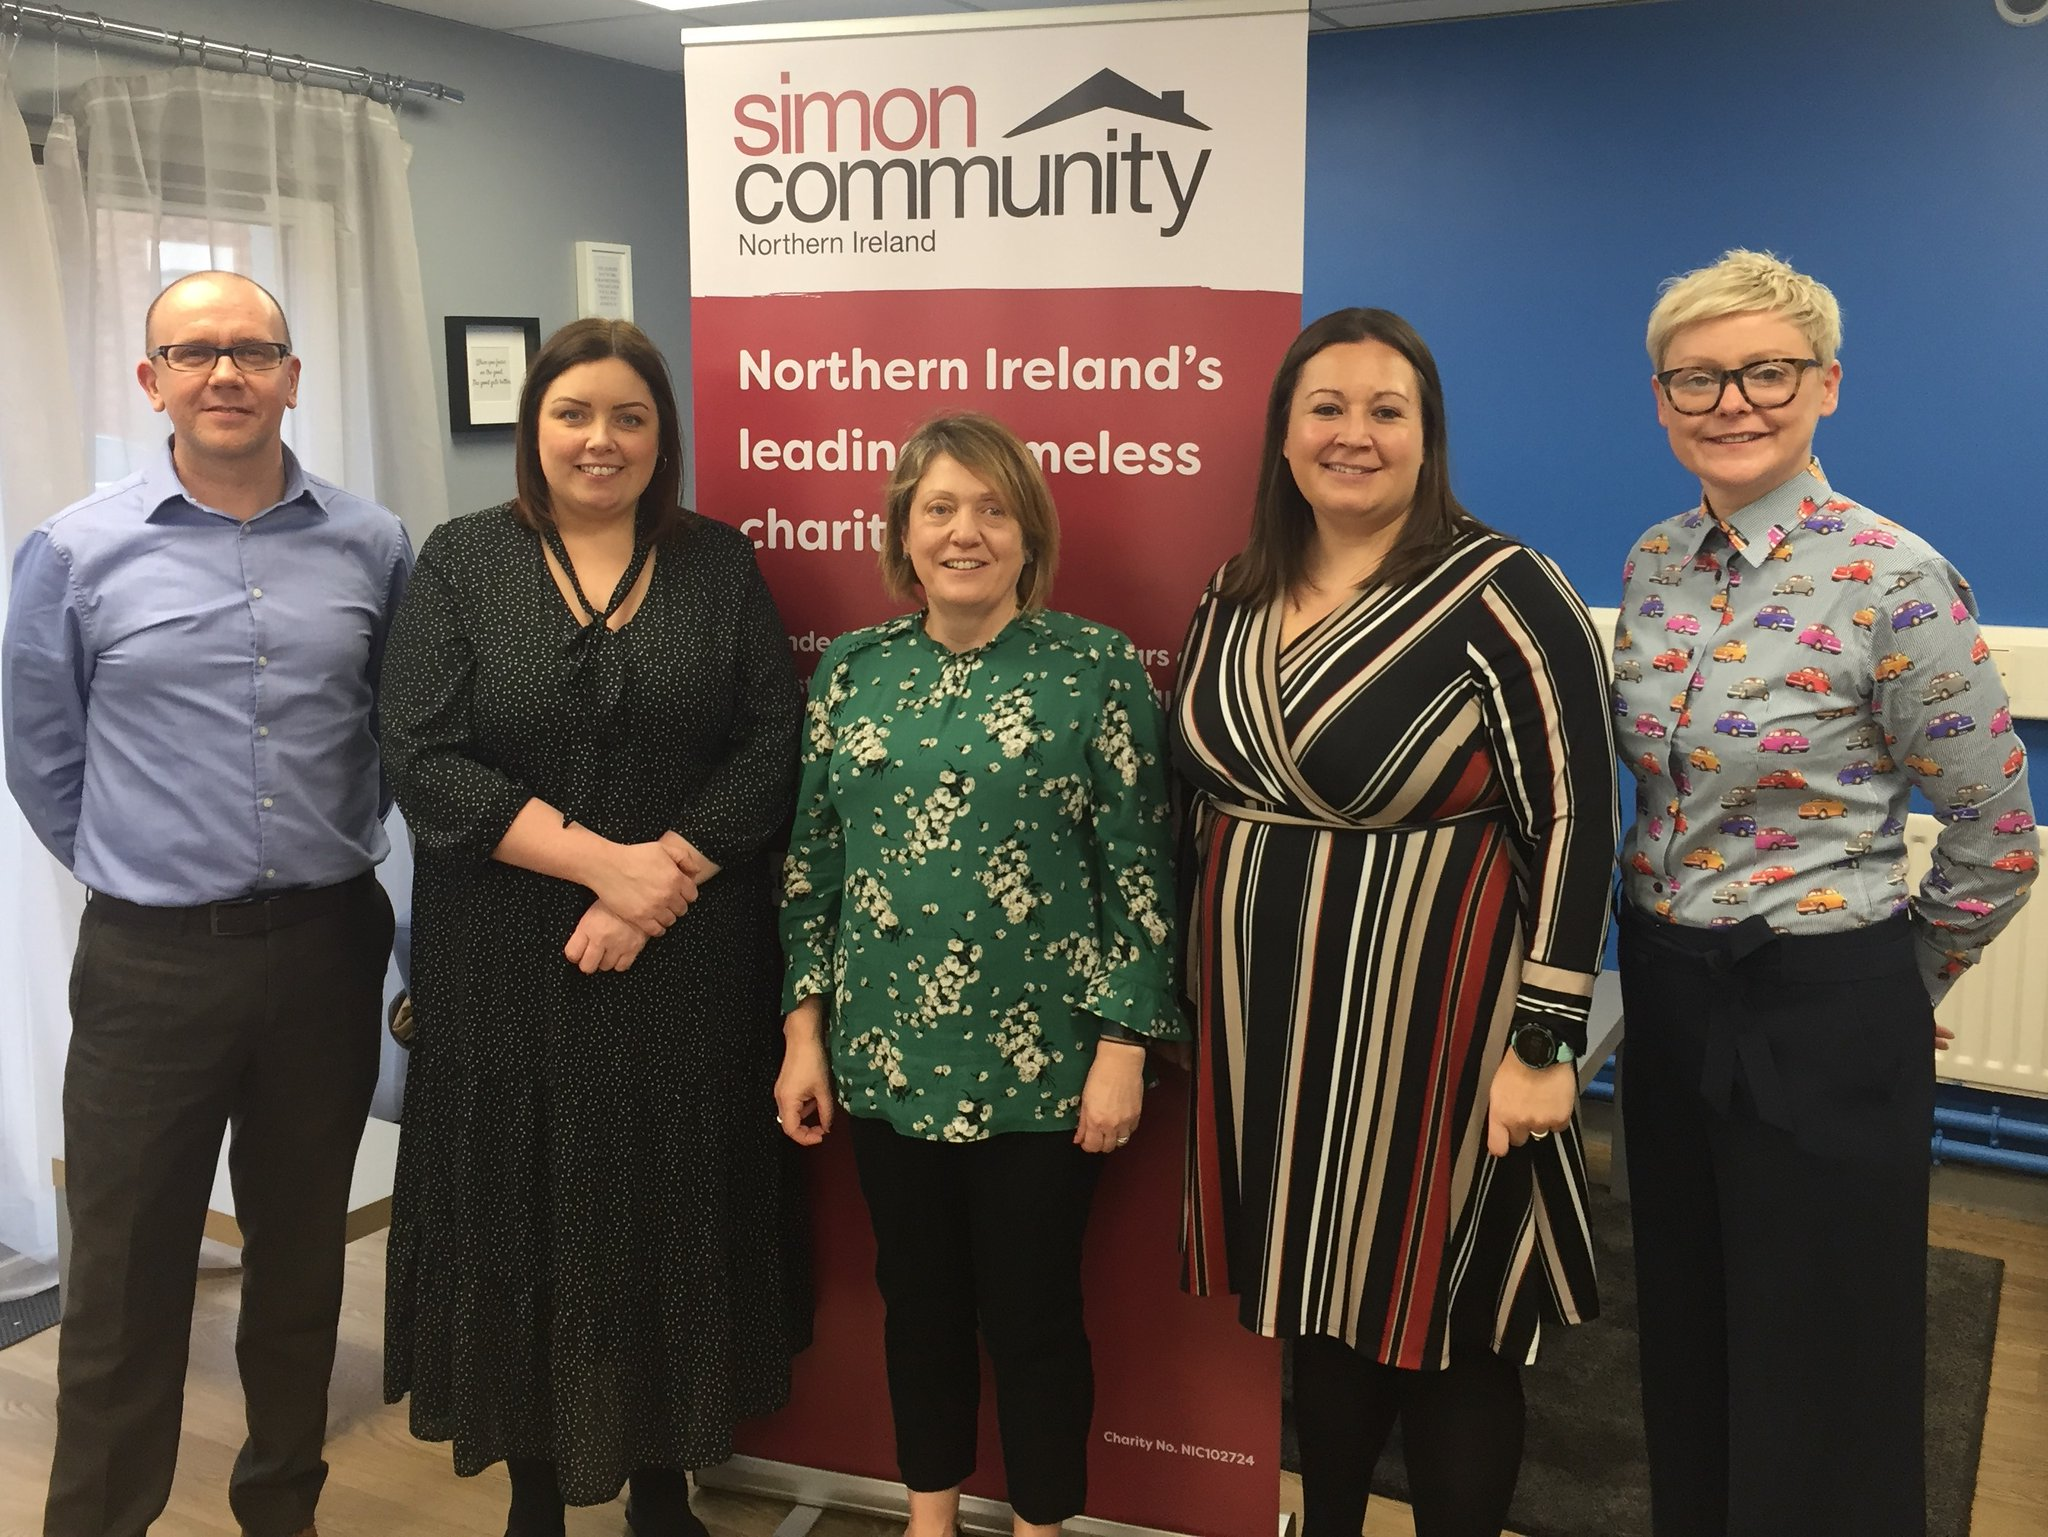 Communities Ni On Twitter Communitiesni Minister Deirdrehargey Saw Today How Her Department Is Supporting Those Experiencing Homelessness Simoncommni Receives Over 5m From Communitiesni To Provide Emergency Accommodation Advice Support Like